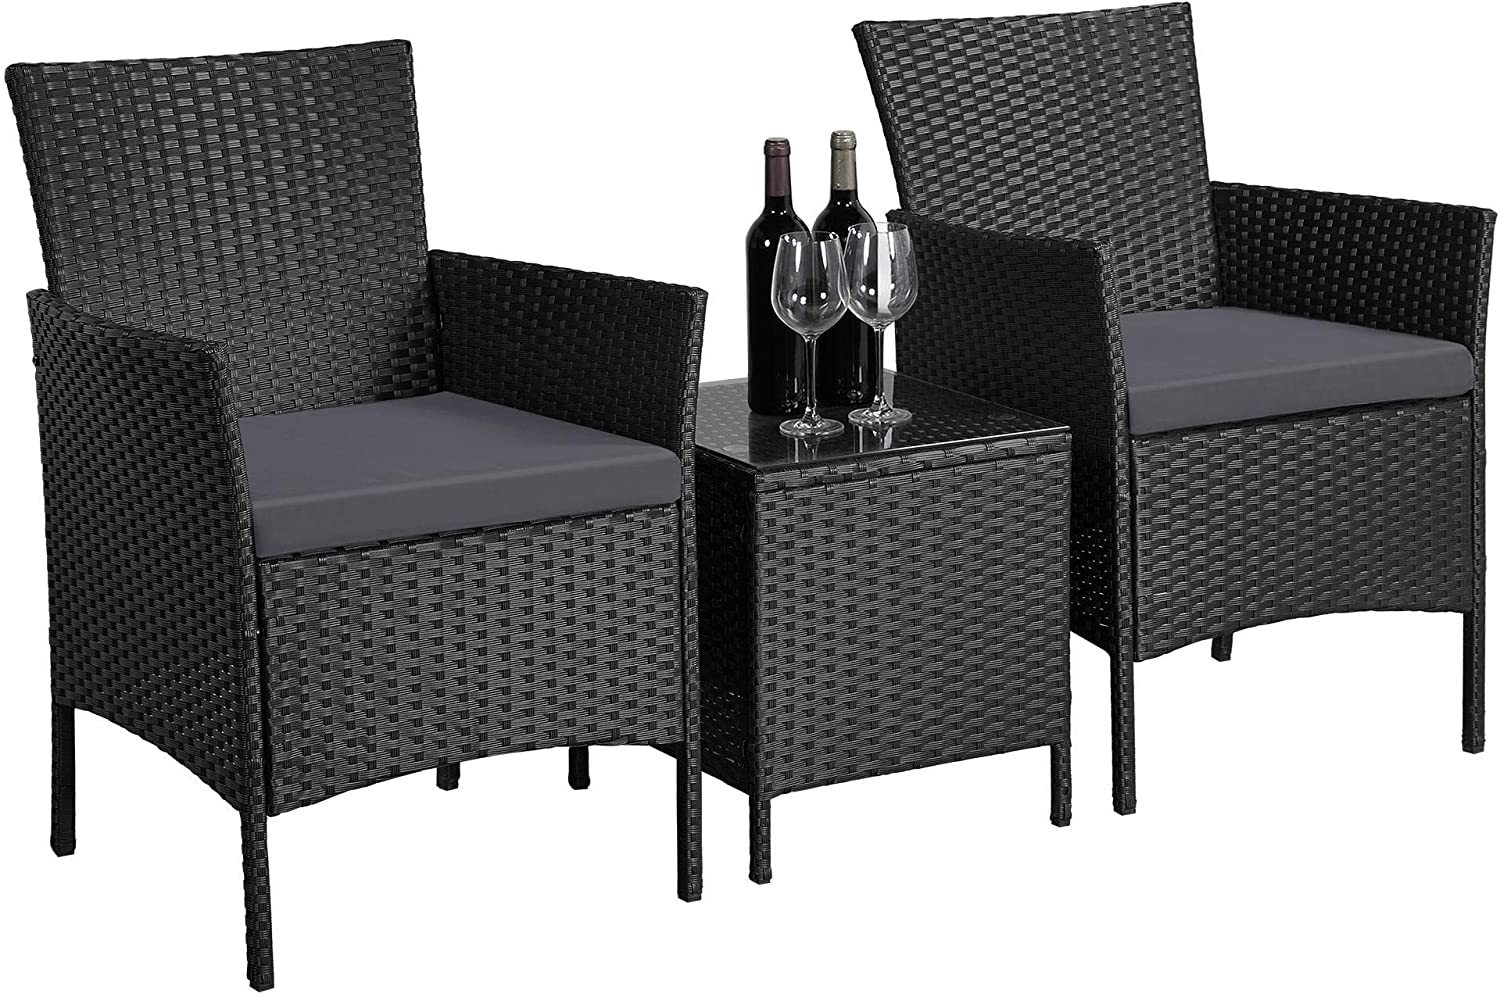 YAHEETECH 3 Piece Wicker Set Rattan Chairs and Coffee Table PE Stacking Chair Side Table Home Furniture for Bistro Patio Porch Outdoor Garden Grey Cushion